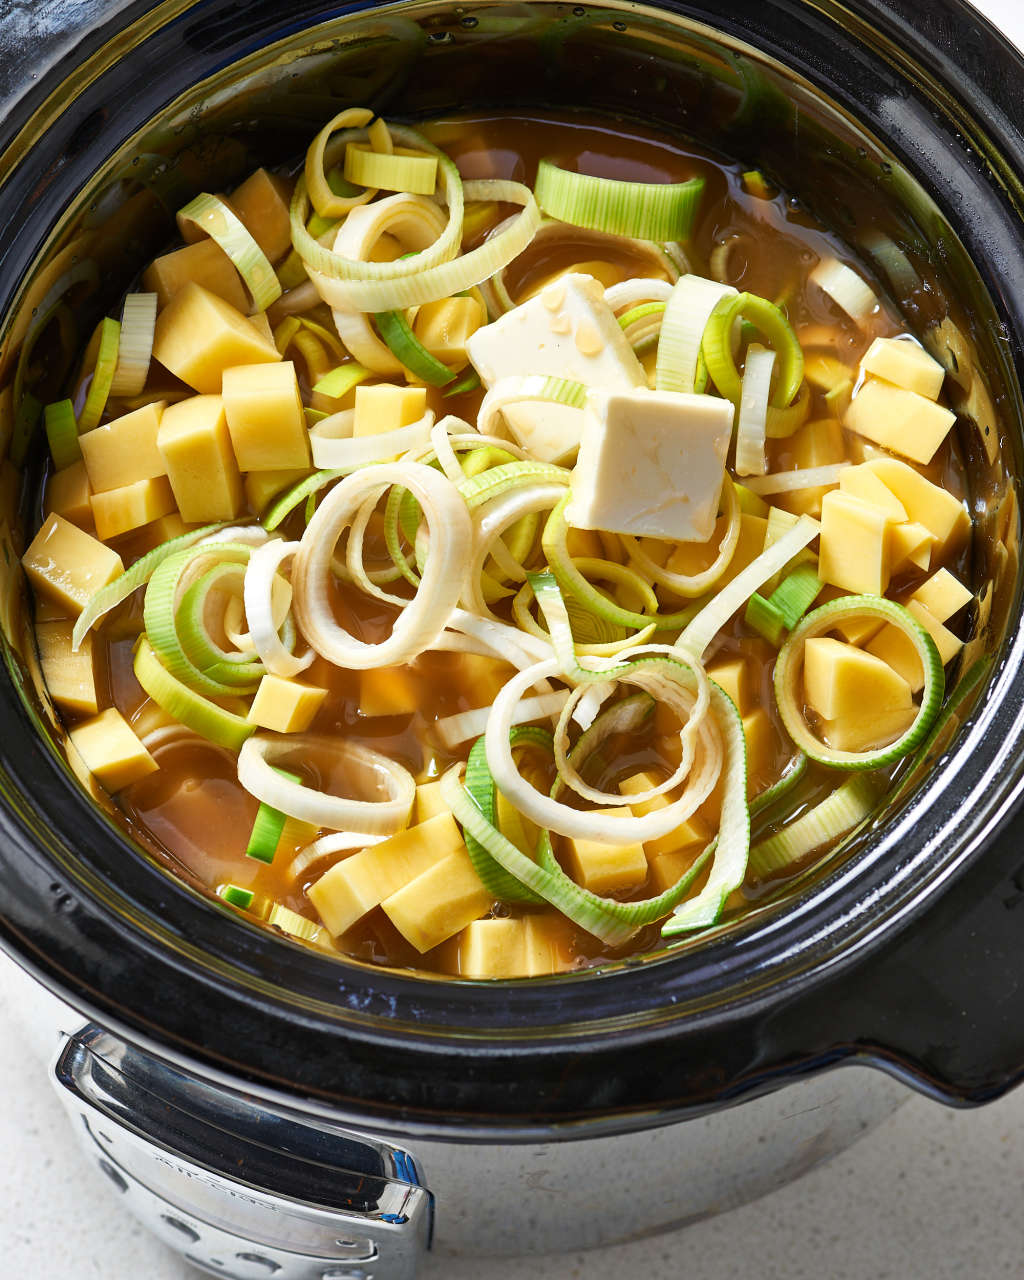 Craving a Lighter Dinner? 5 Ways the Slow Cooker Can Help.